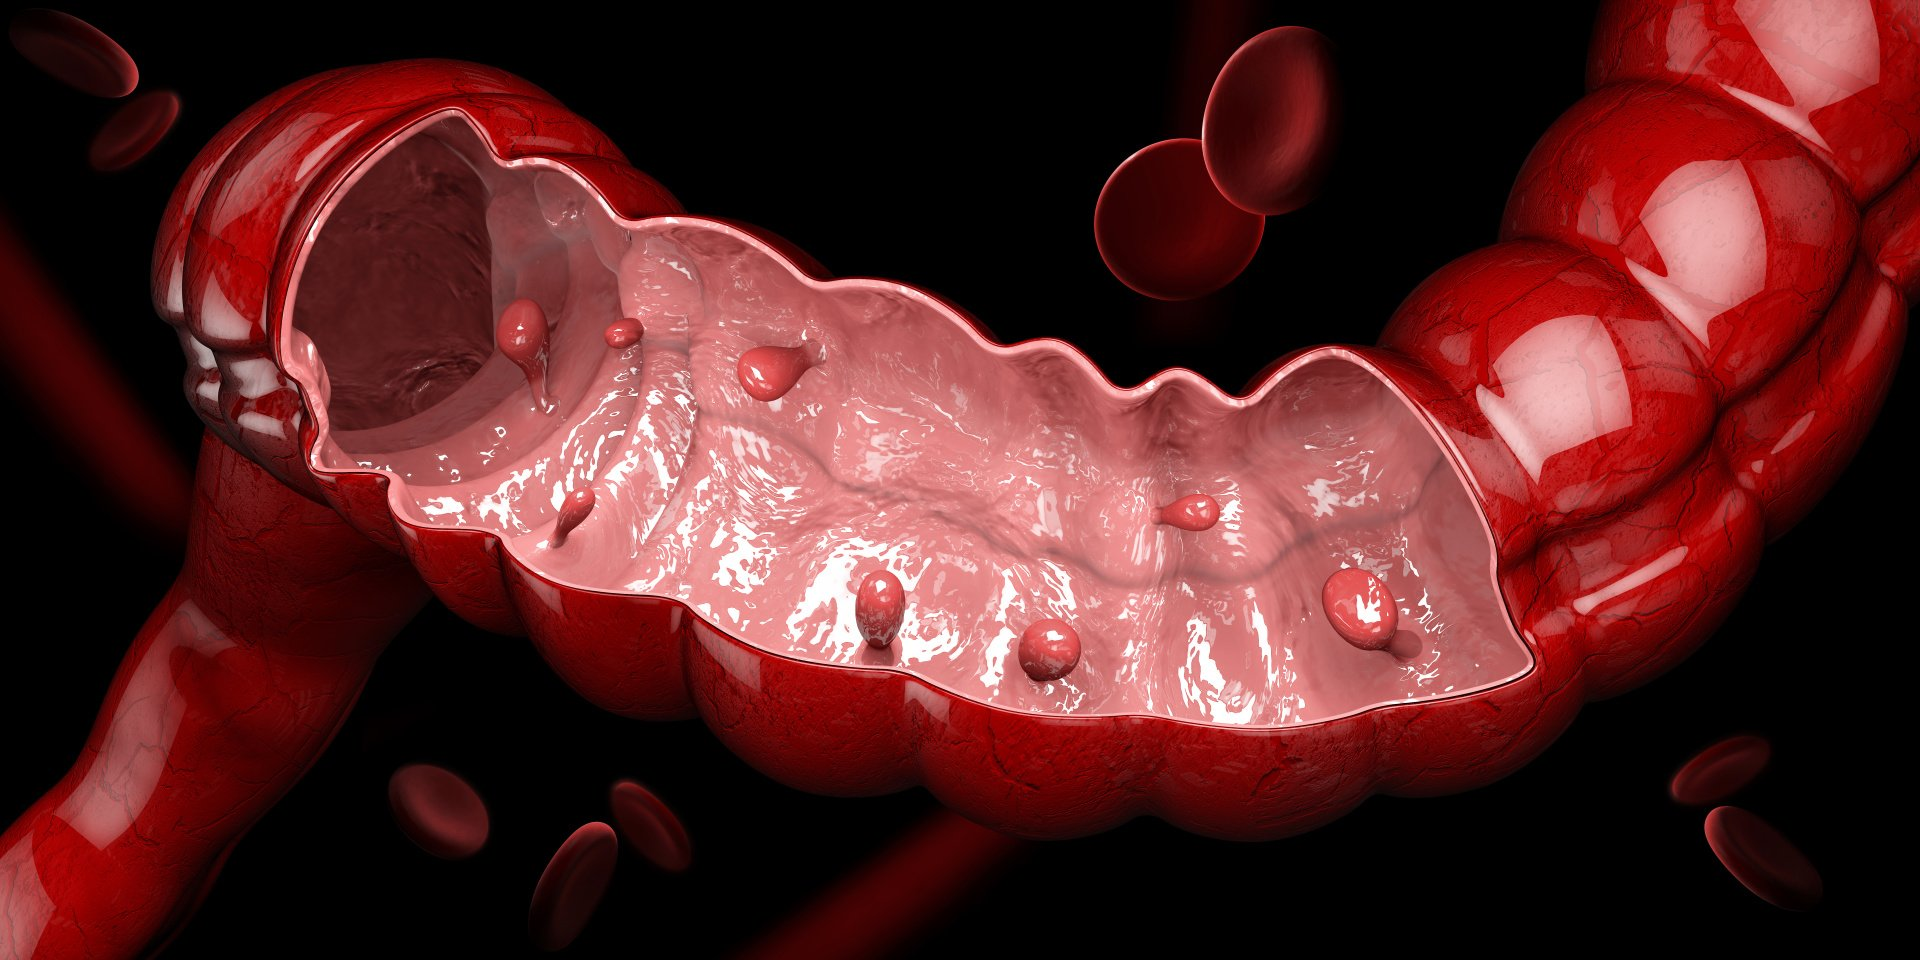 Symptoms, Causes, and Treatments for Colon Polyps